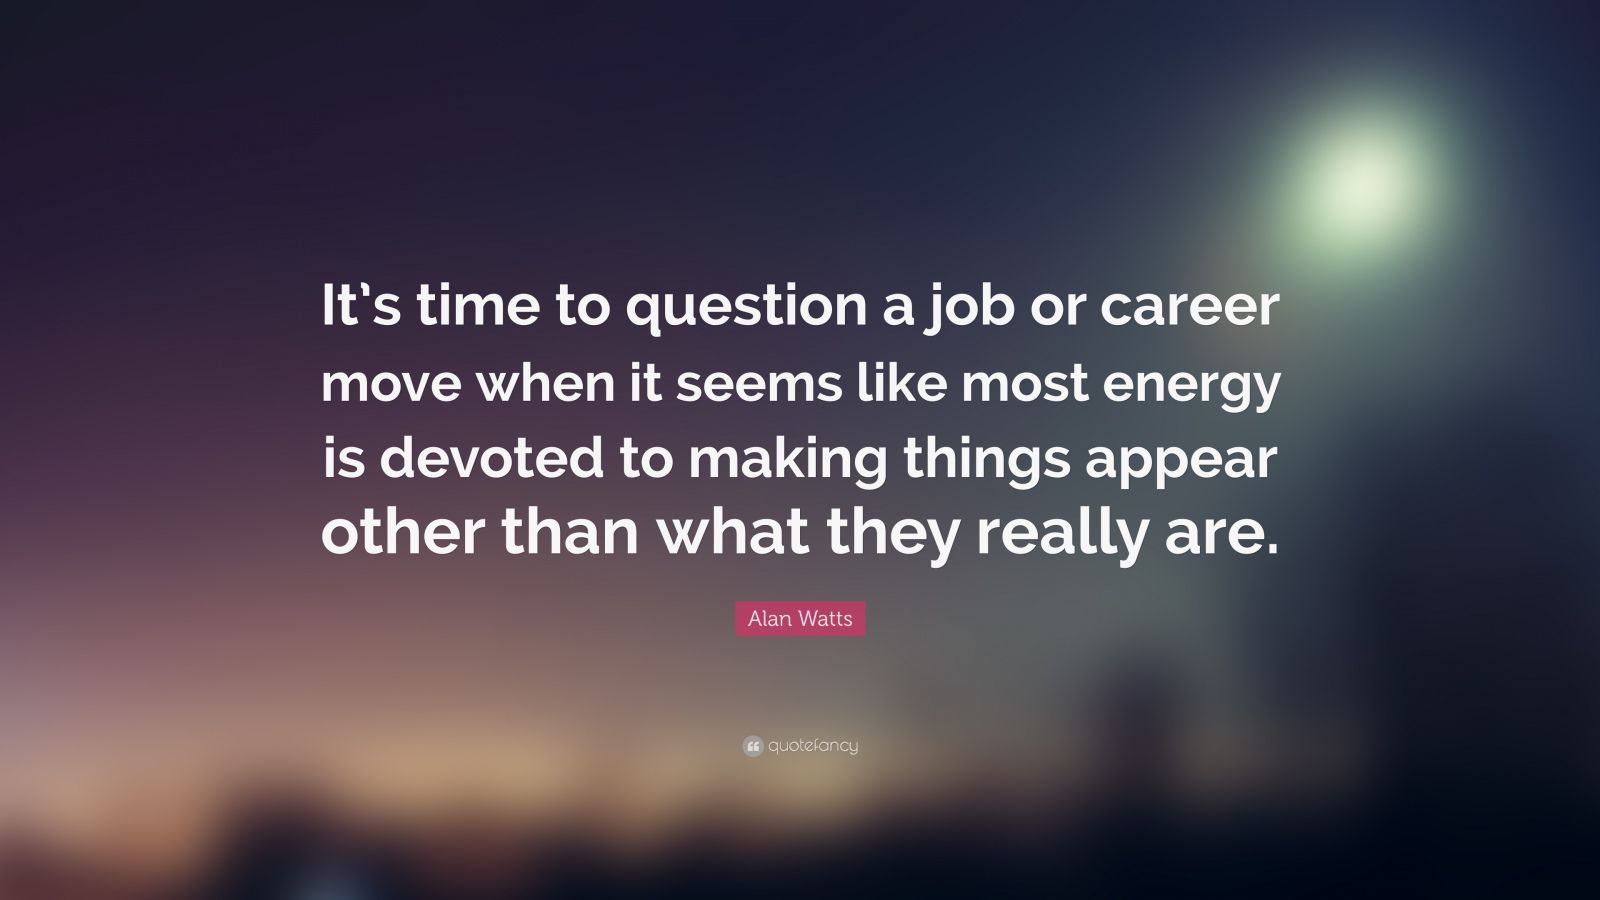 """Alan Watts Quote: """"It's time to question a job or career move when it seems like most energy is devoted to making things appear other than what they really are."""""""